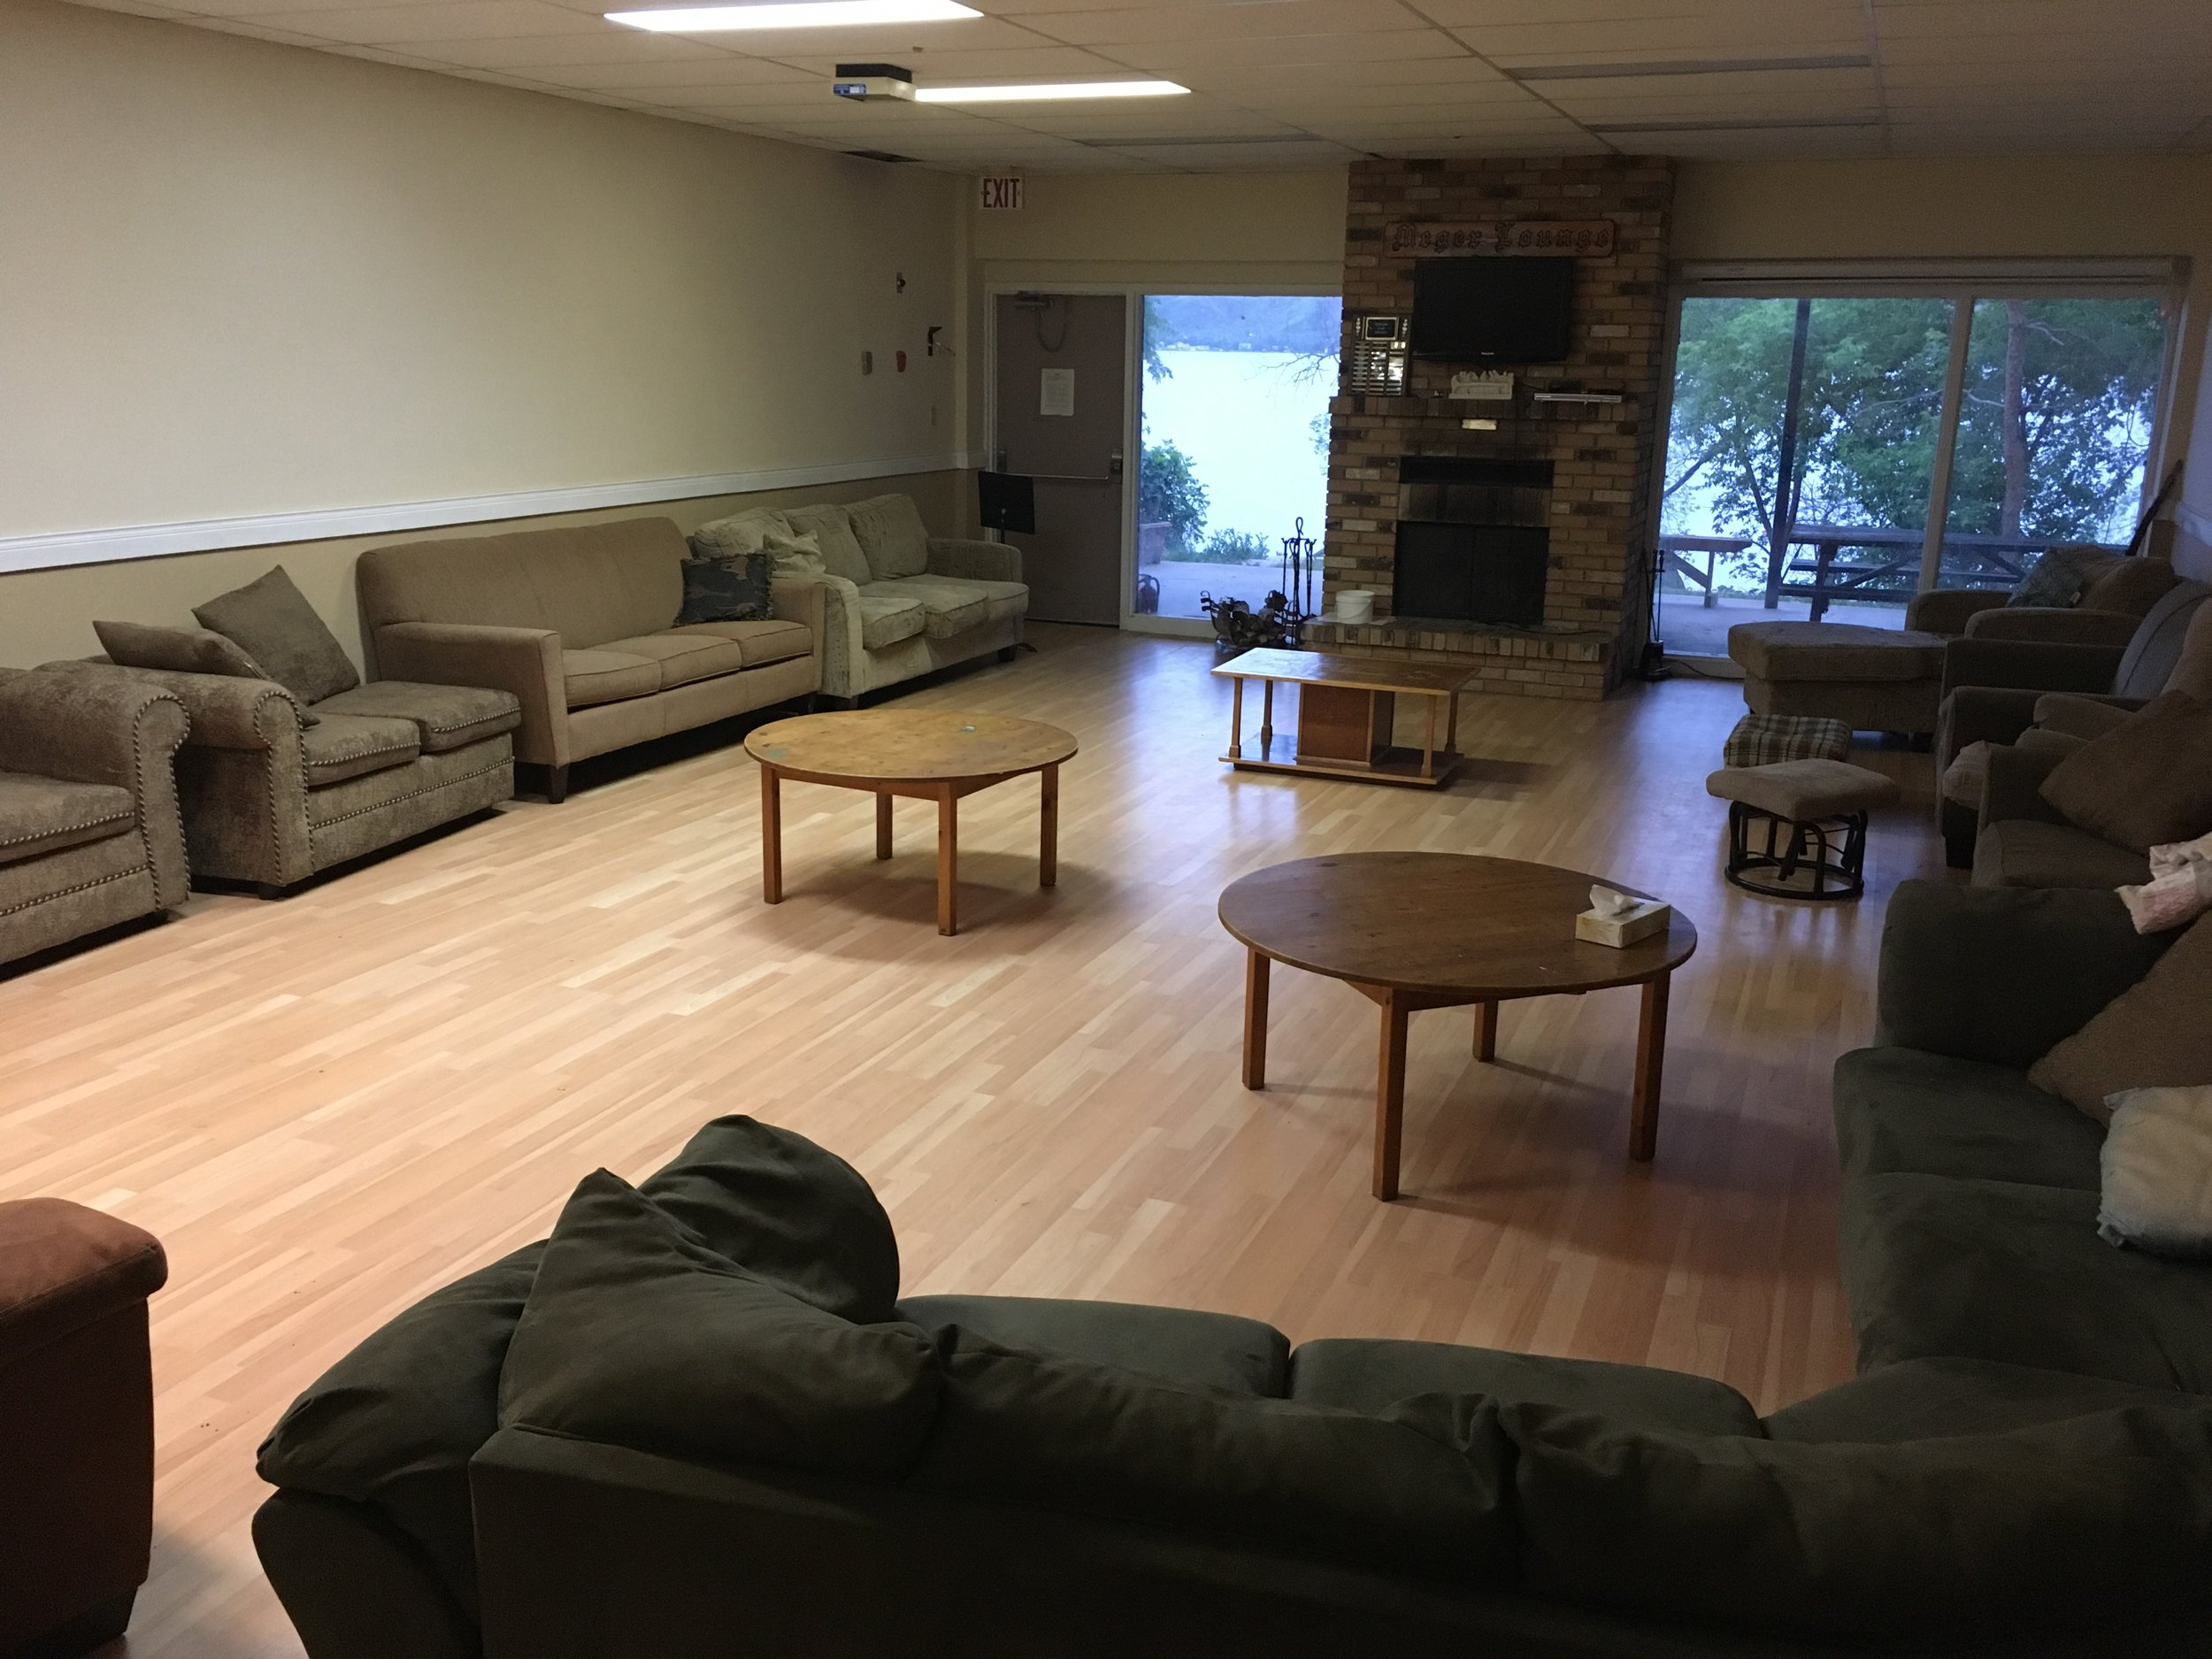 - Upper Level Offers:Contemporary kitchen with 2 large stoves, walk-in cooler, 2 large freezers, commercial dishwasher, heated/waterless stainless steel food servers, cooking and serving equipment.Dining hall with a capacity of 300 people.Lower Level Offers:14 individually electrically heated rooms40 single and 16 double bedsLounge area with wood fireplace